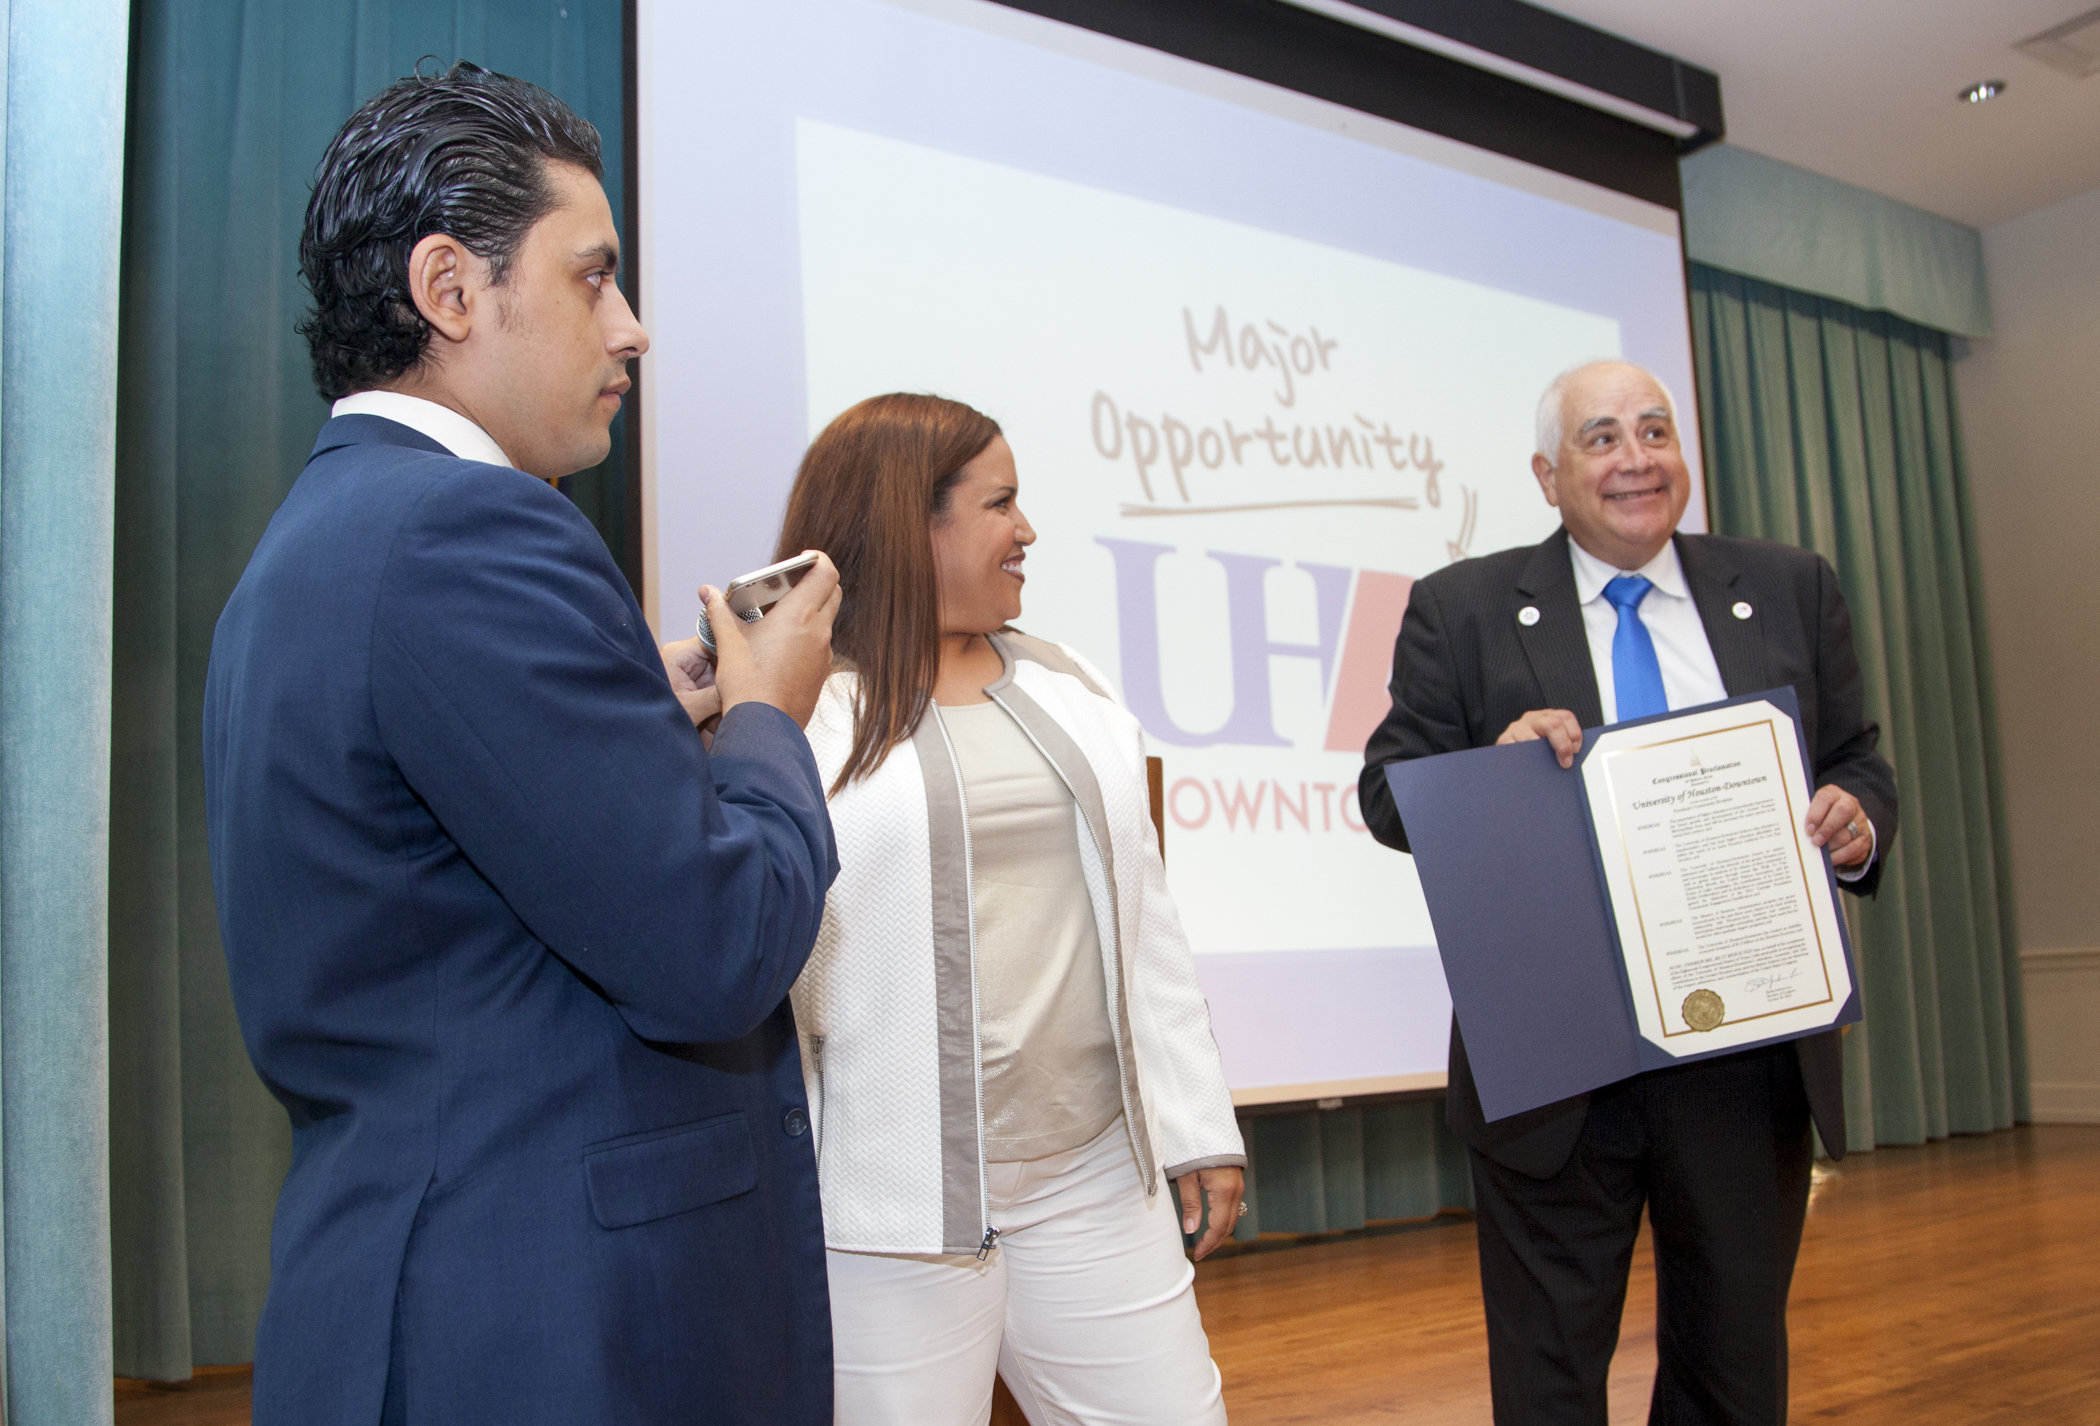 At the President's Community Breakfast Oct. 30, UHD alumnus Ivan Sanchez presents UHD President Bill Flores, Ph.D., with a congressional proclamation on behalf of U.S. Rep. Sheila Jackson Lee as presenter Trazanna Moreno looks on.